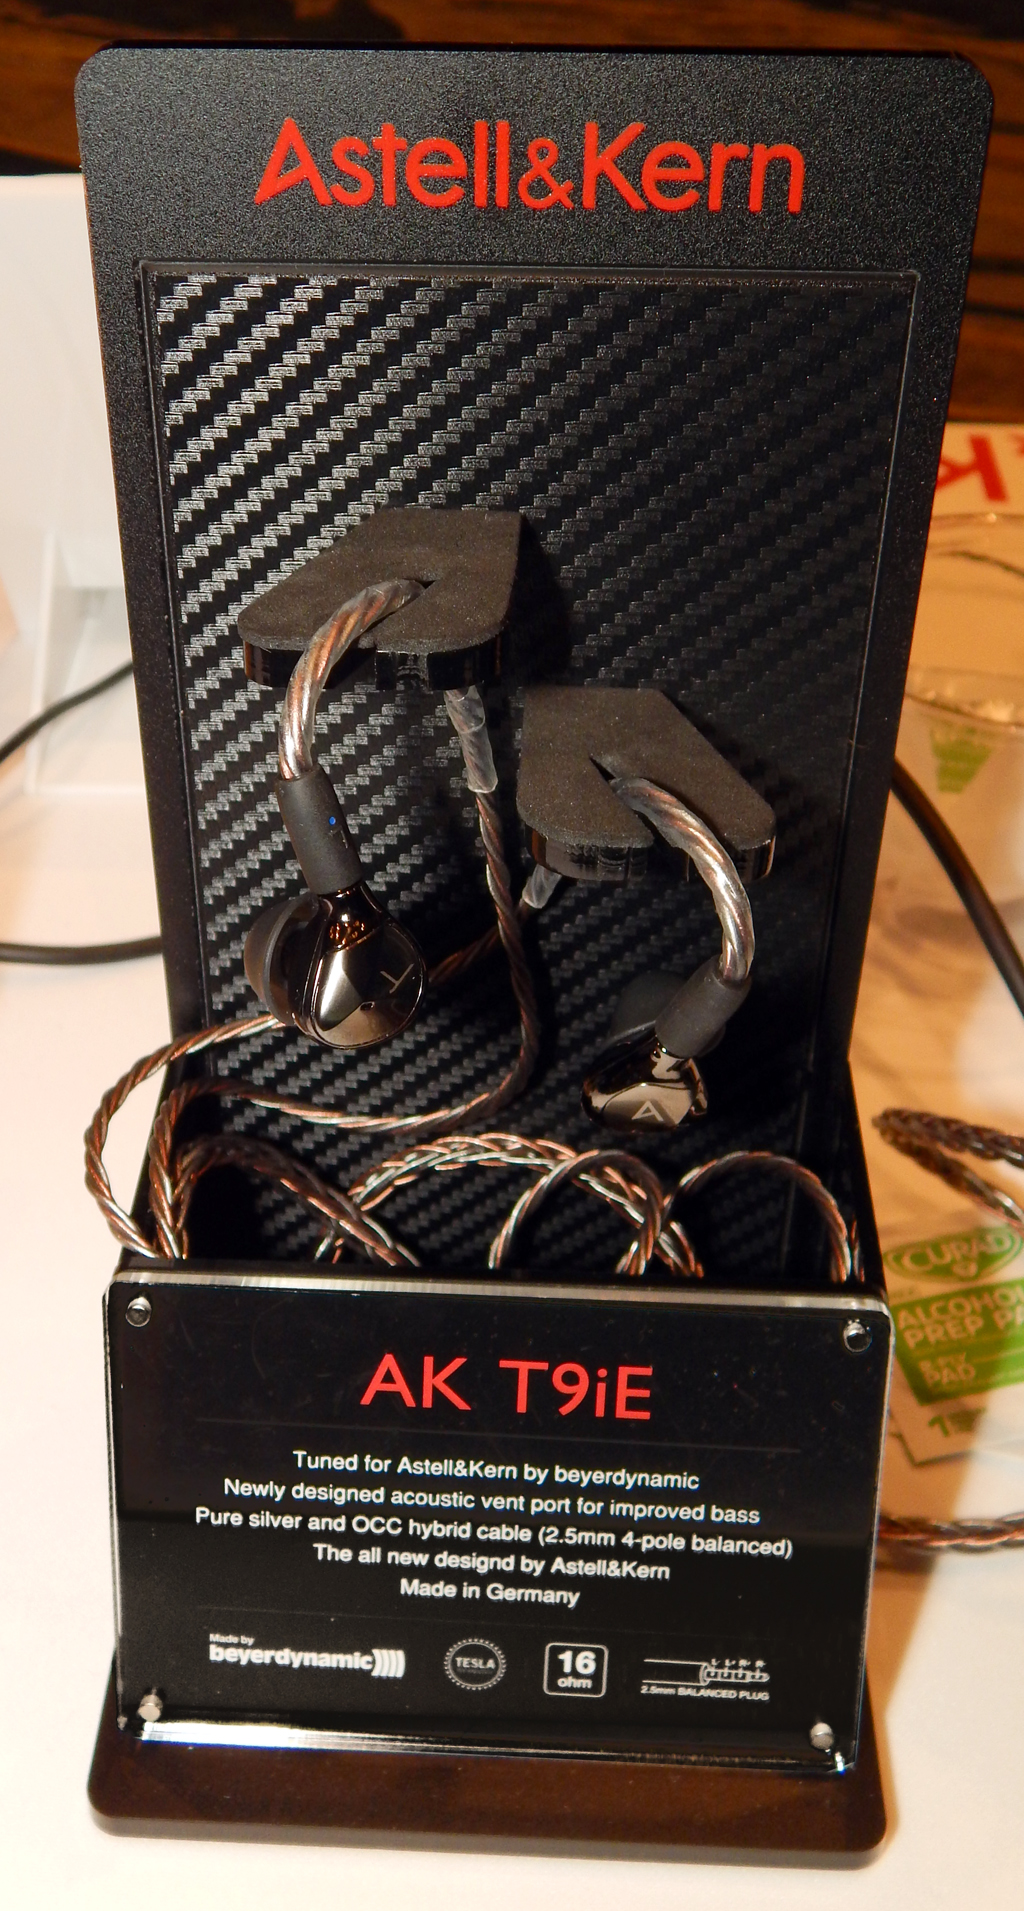 Astell&Kern/beyerdynamic AK T9iE IEM